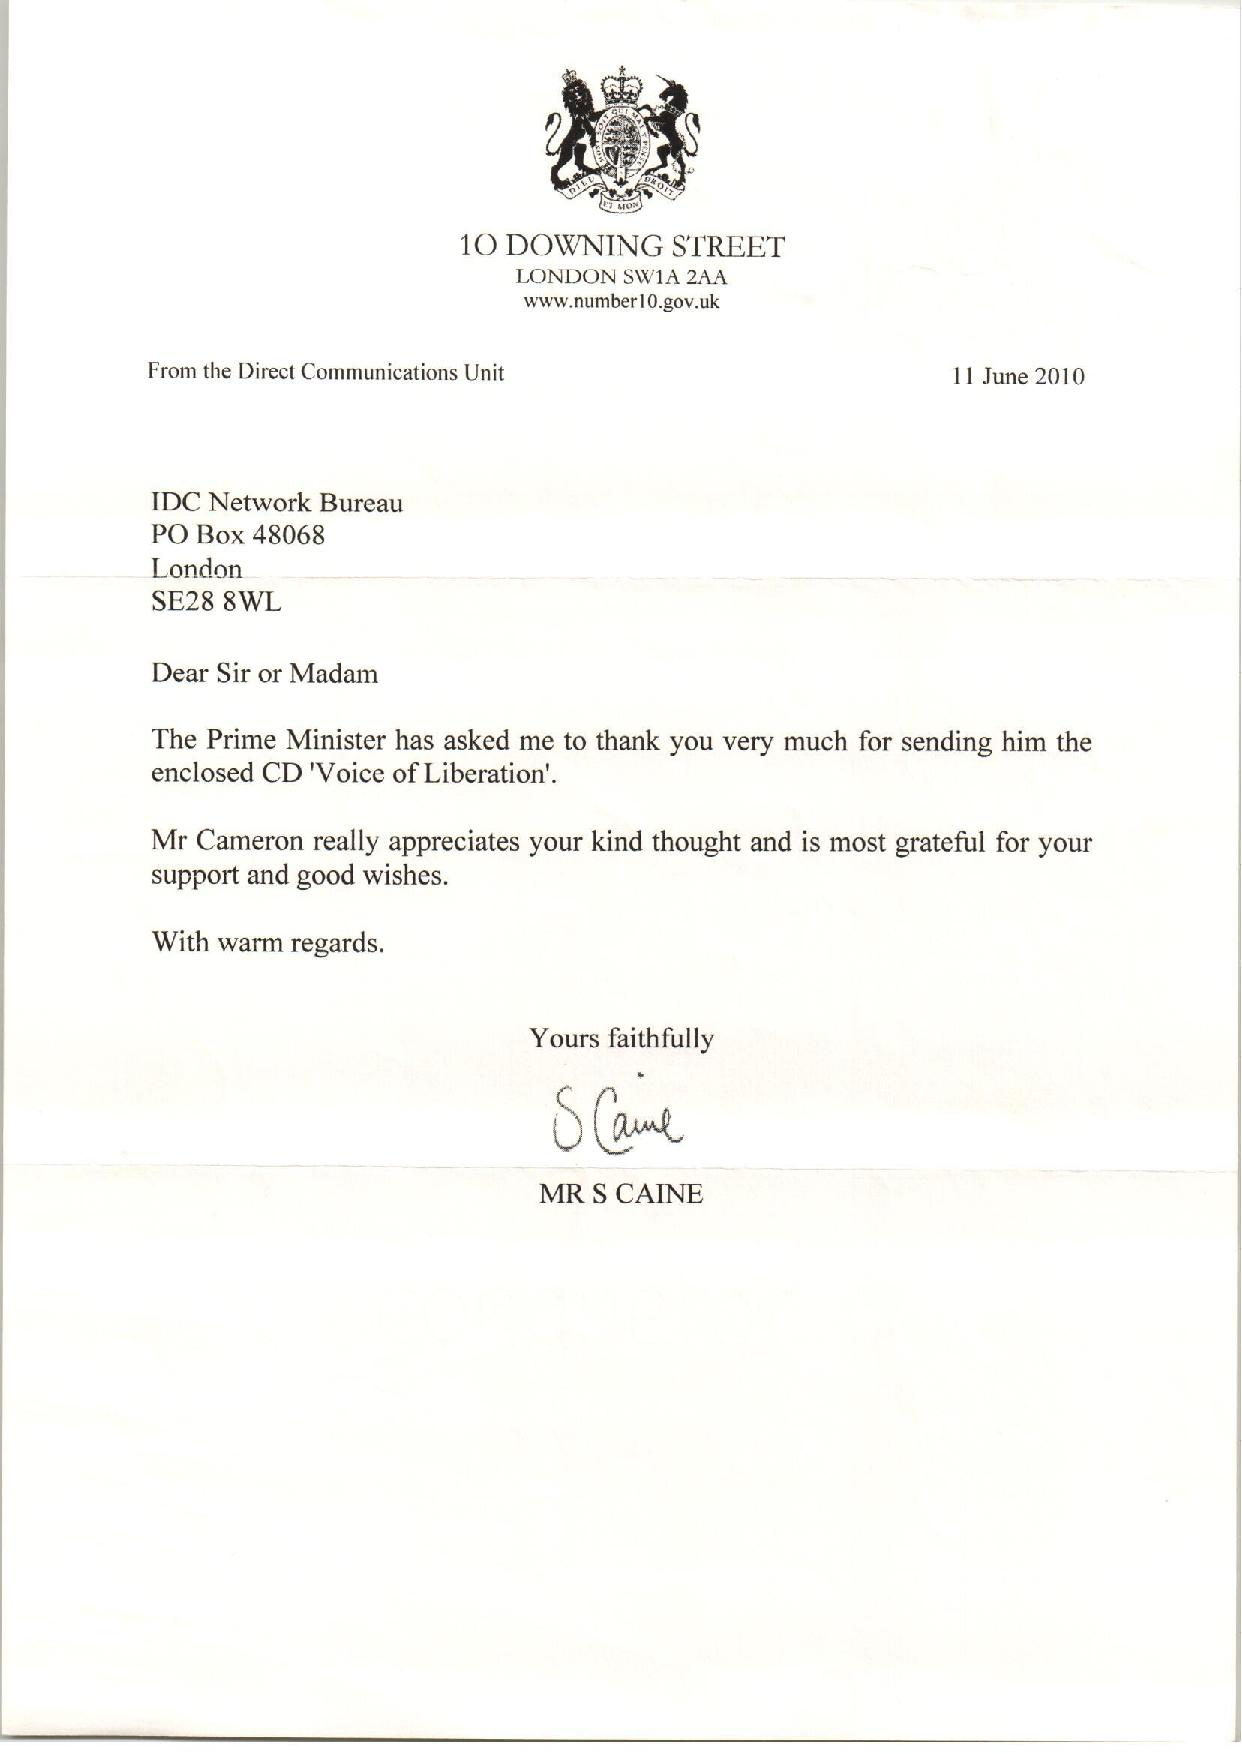 Prime Minister David Cameron Support Acknowledgement For Commonwealth Informative CD Voice of Liberation-page-001